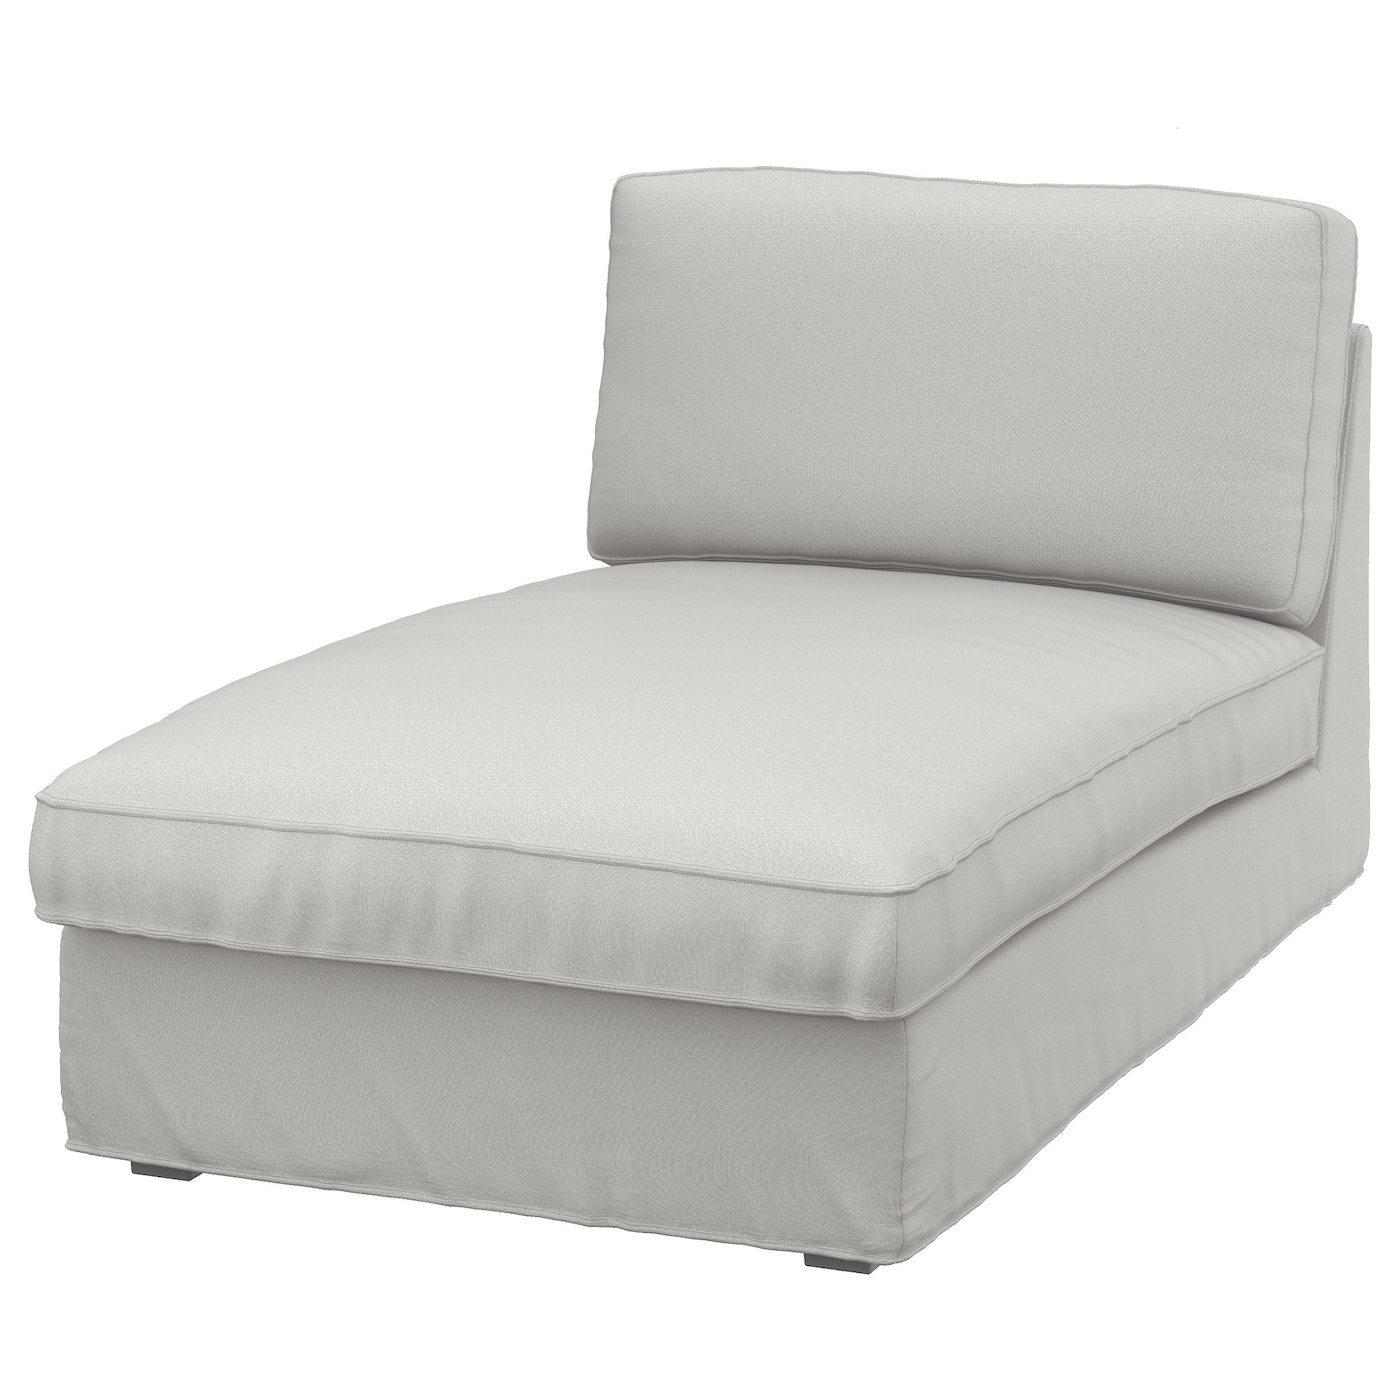 Kivik chaise longue ramna light grey ikea for Chaise longue en toile pliante